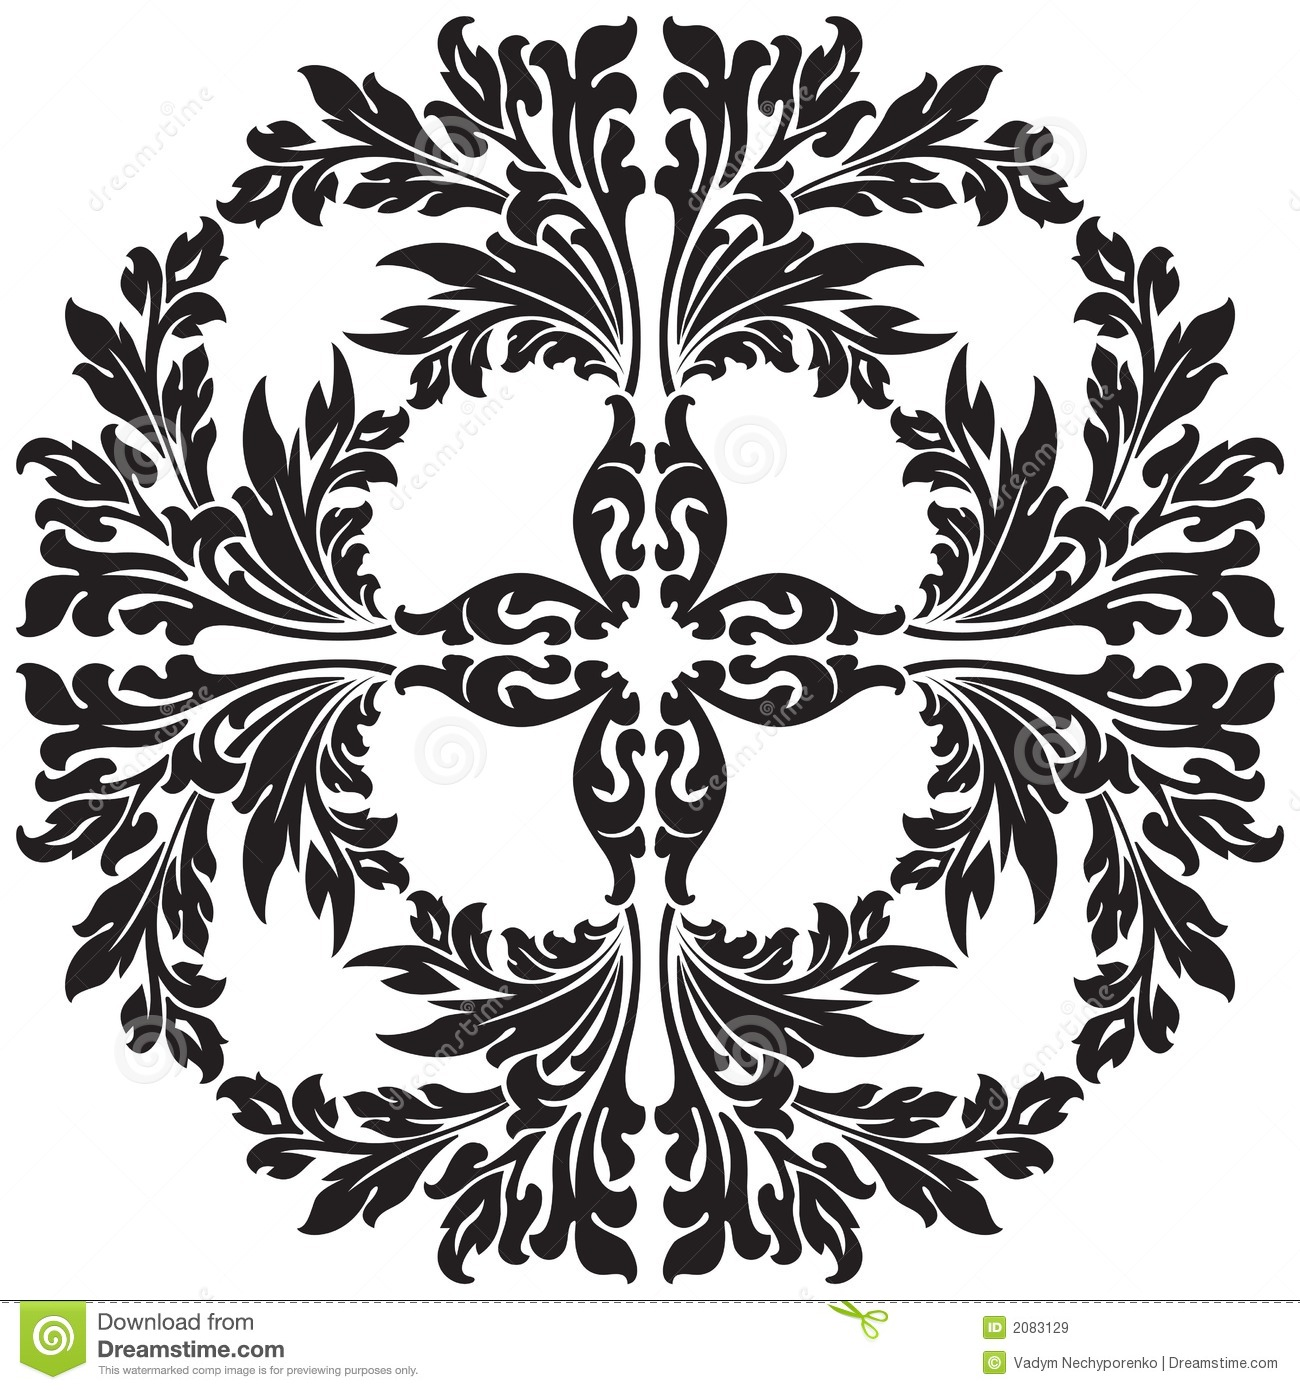 Abstract Flower Background With Decoration Elements For: Abstract Floral Decorative Element In Black Color Vector